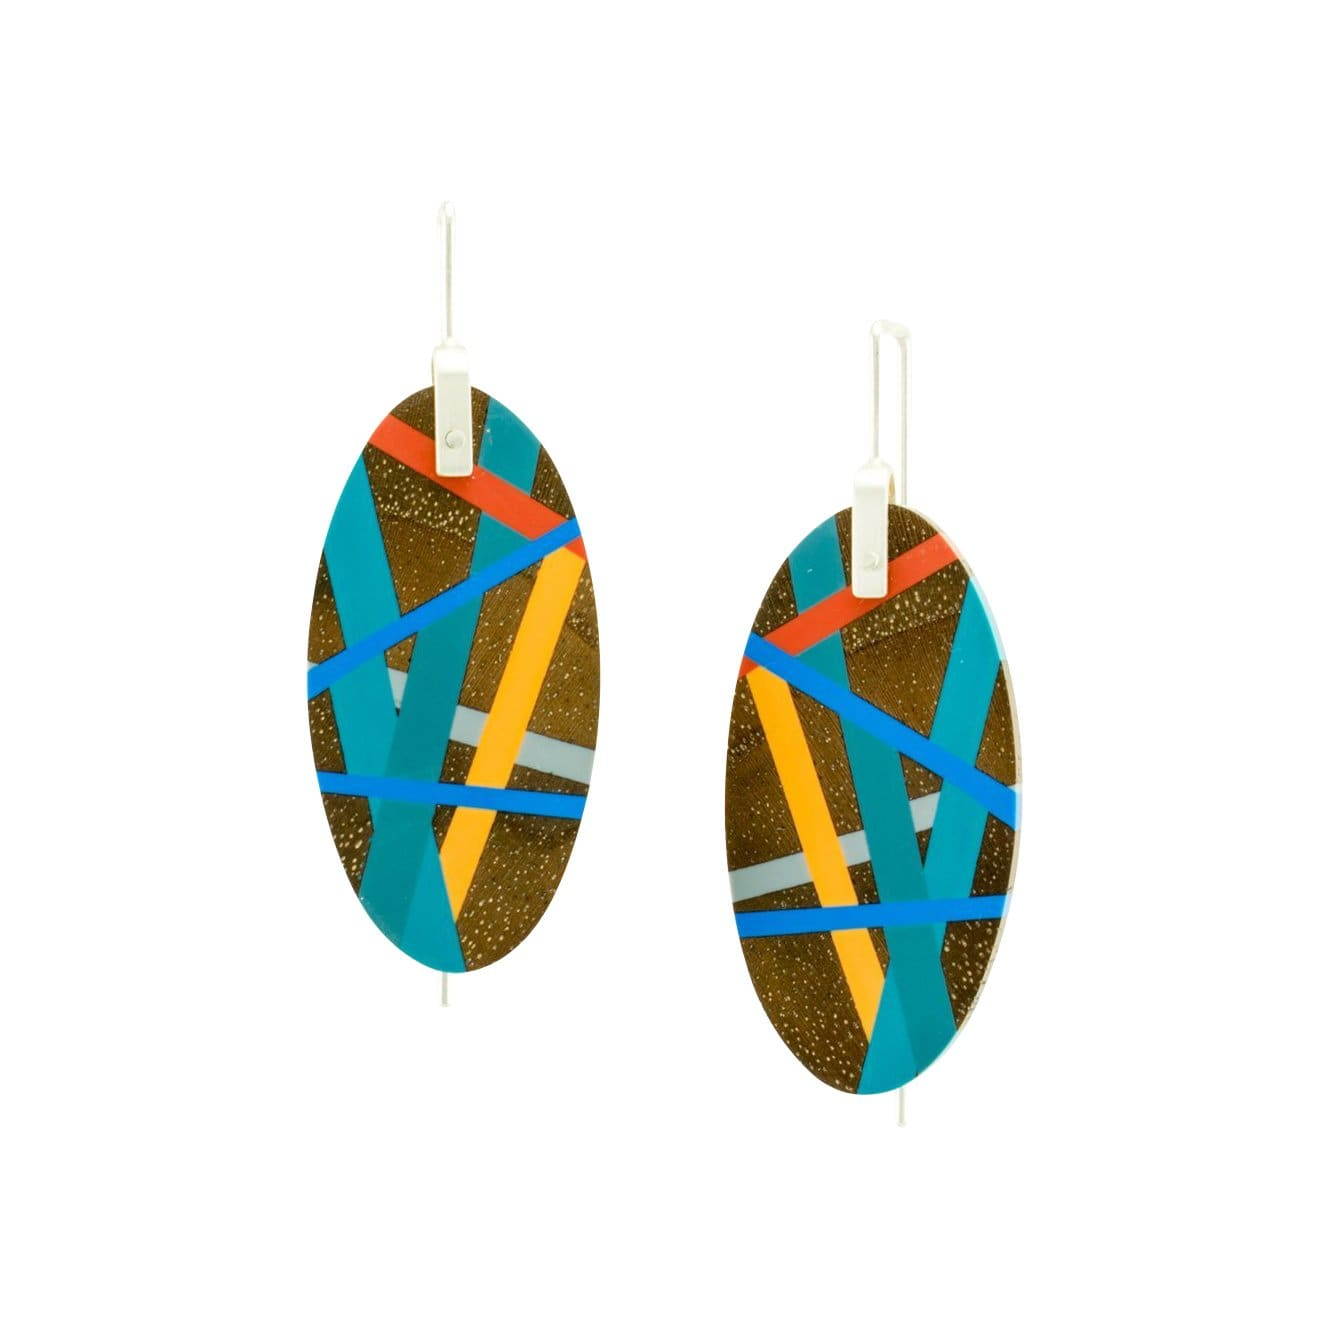 Laura Jaklitsch Jewelry Earrings Pacific Coast Walnut Wood with Inlay Hanging Earrings